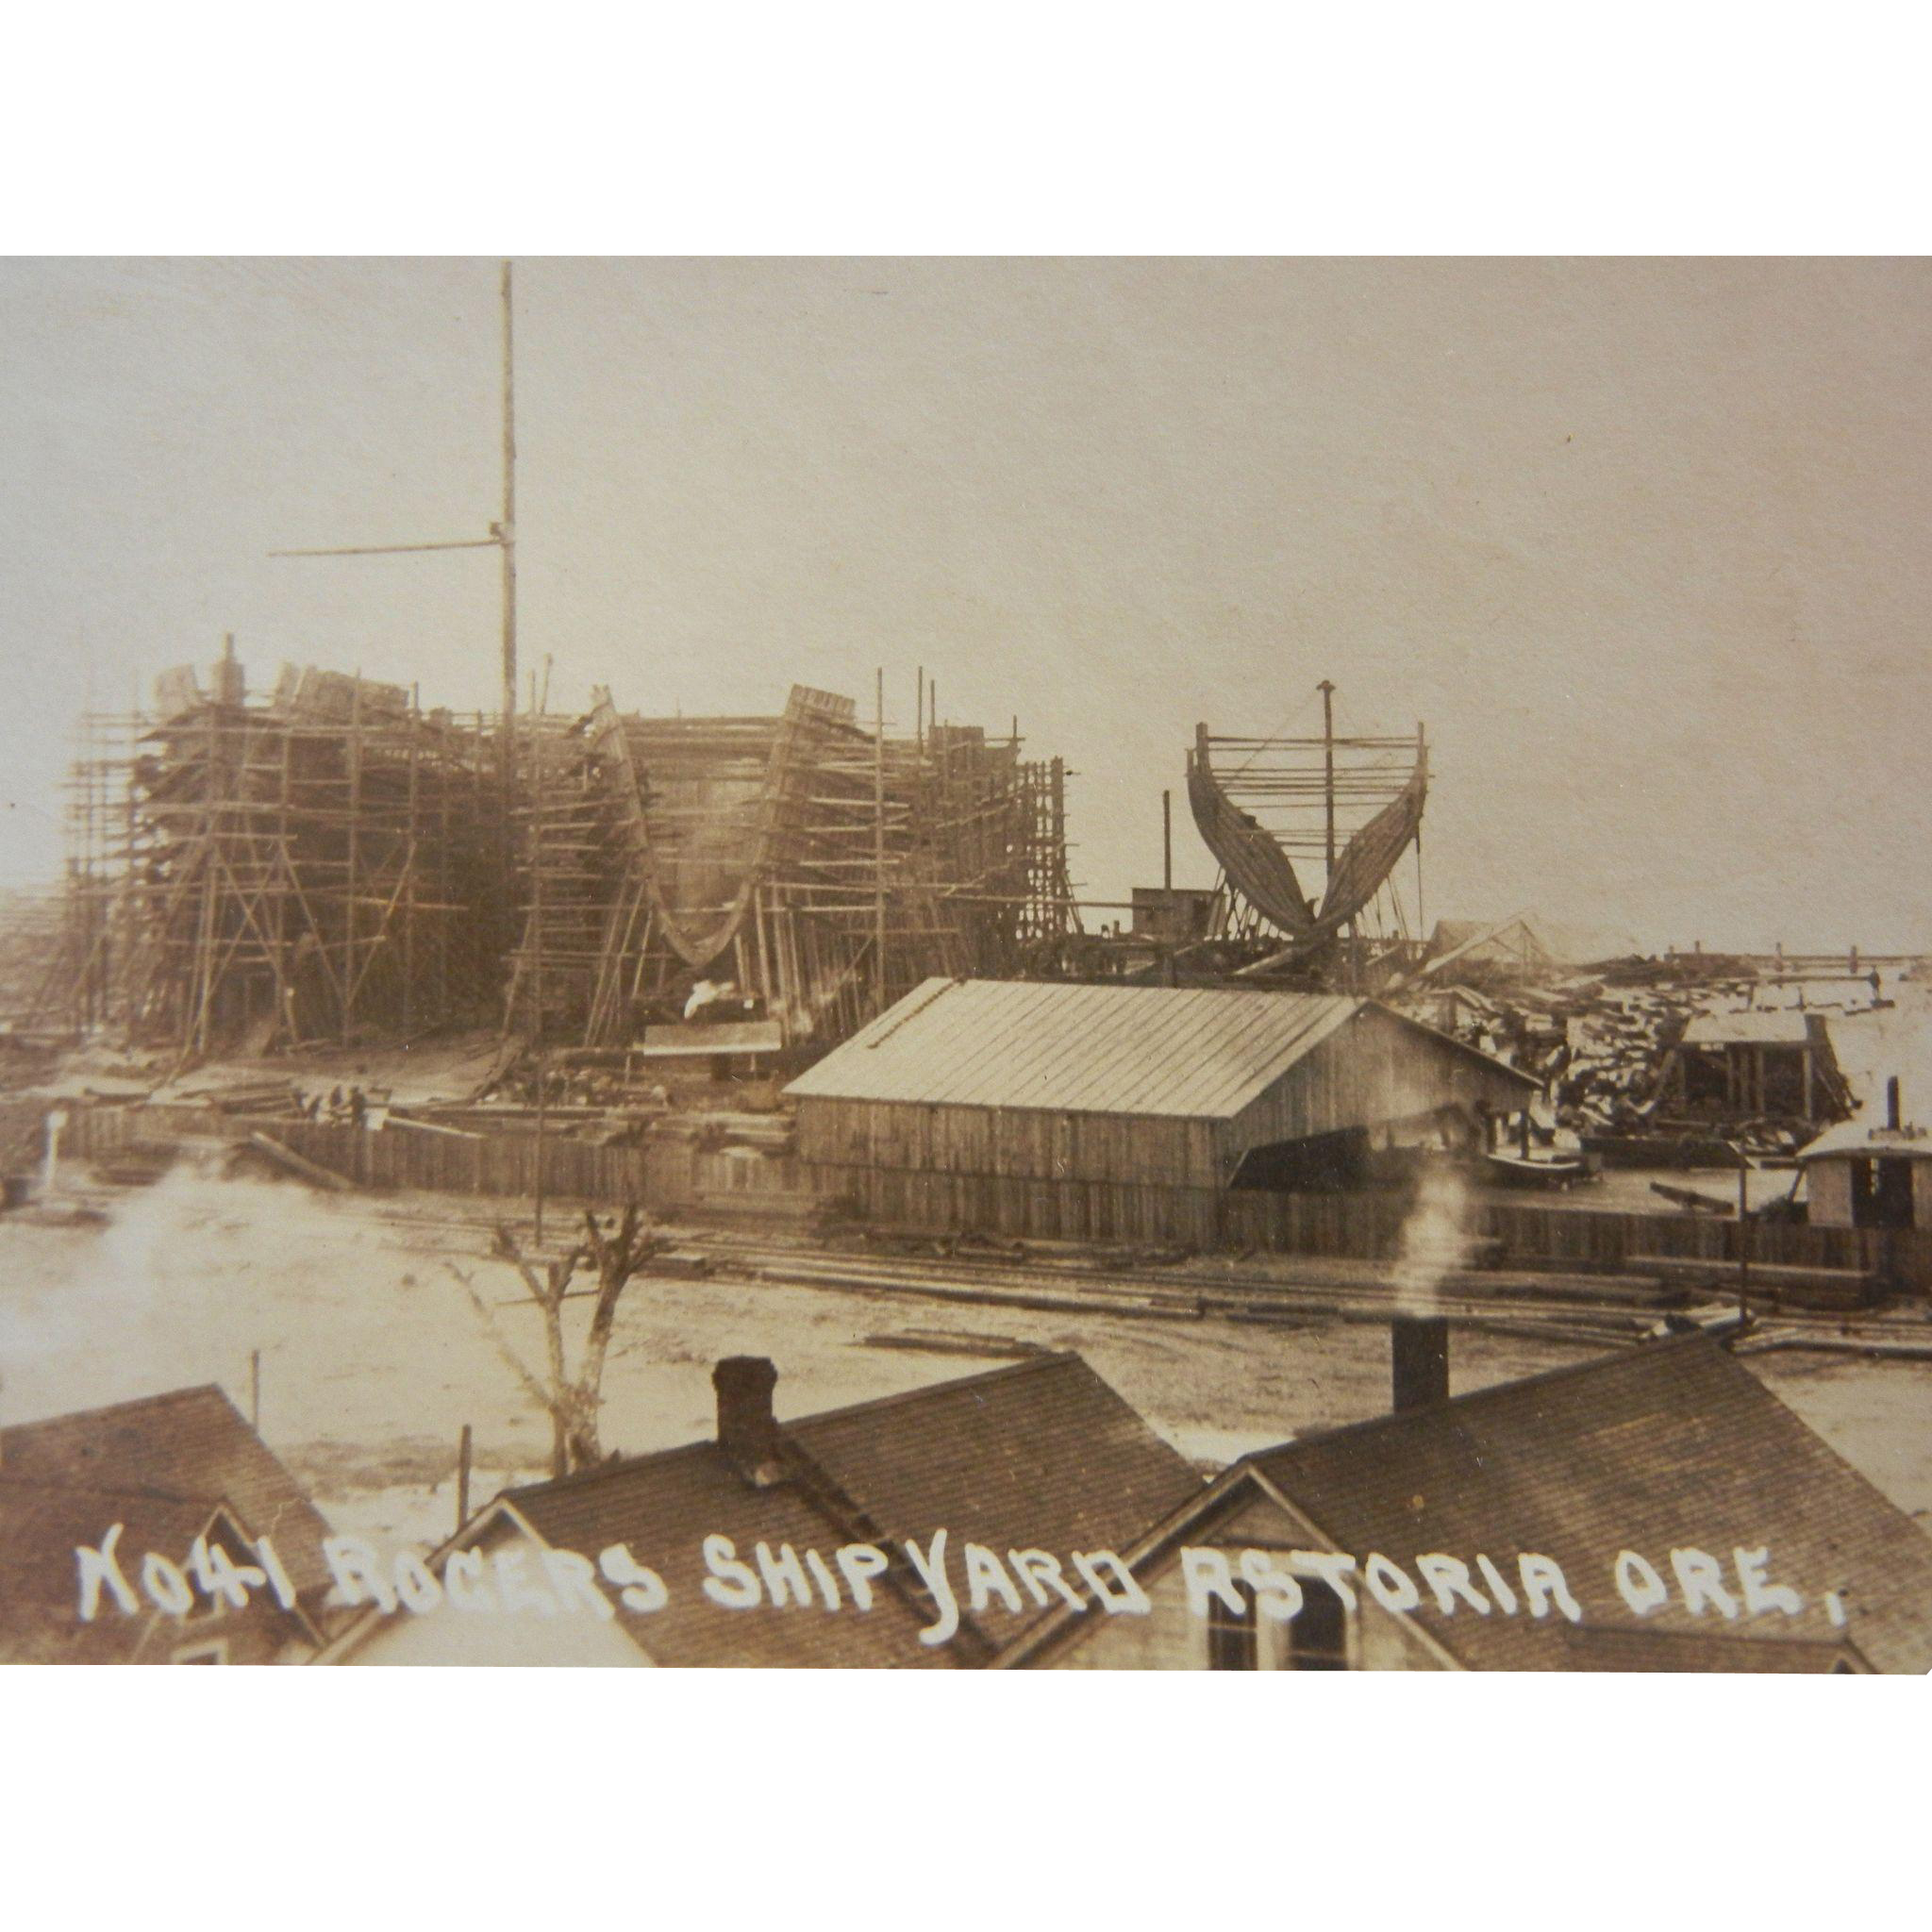 Vintage Original Photograph Postcard of Roger's Shipyard in Astoria, Oregon